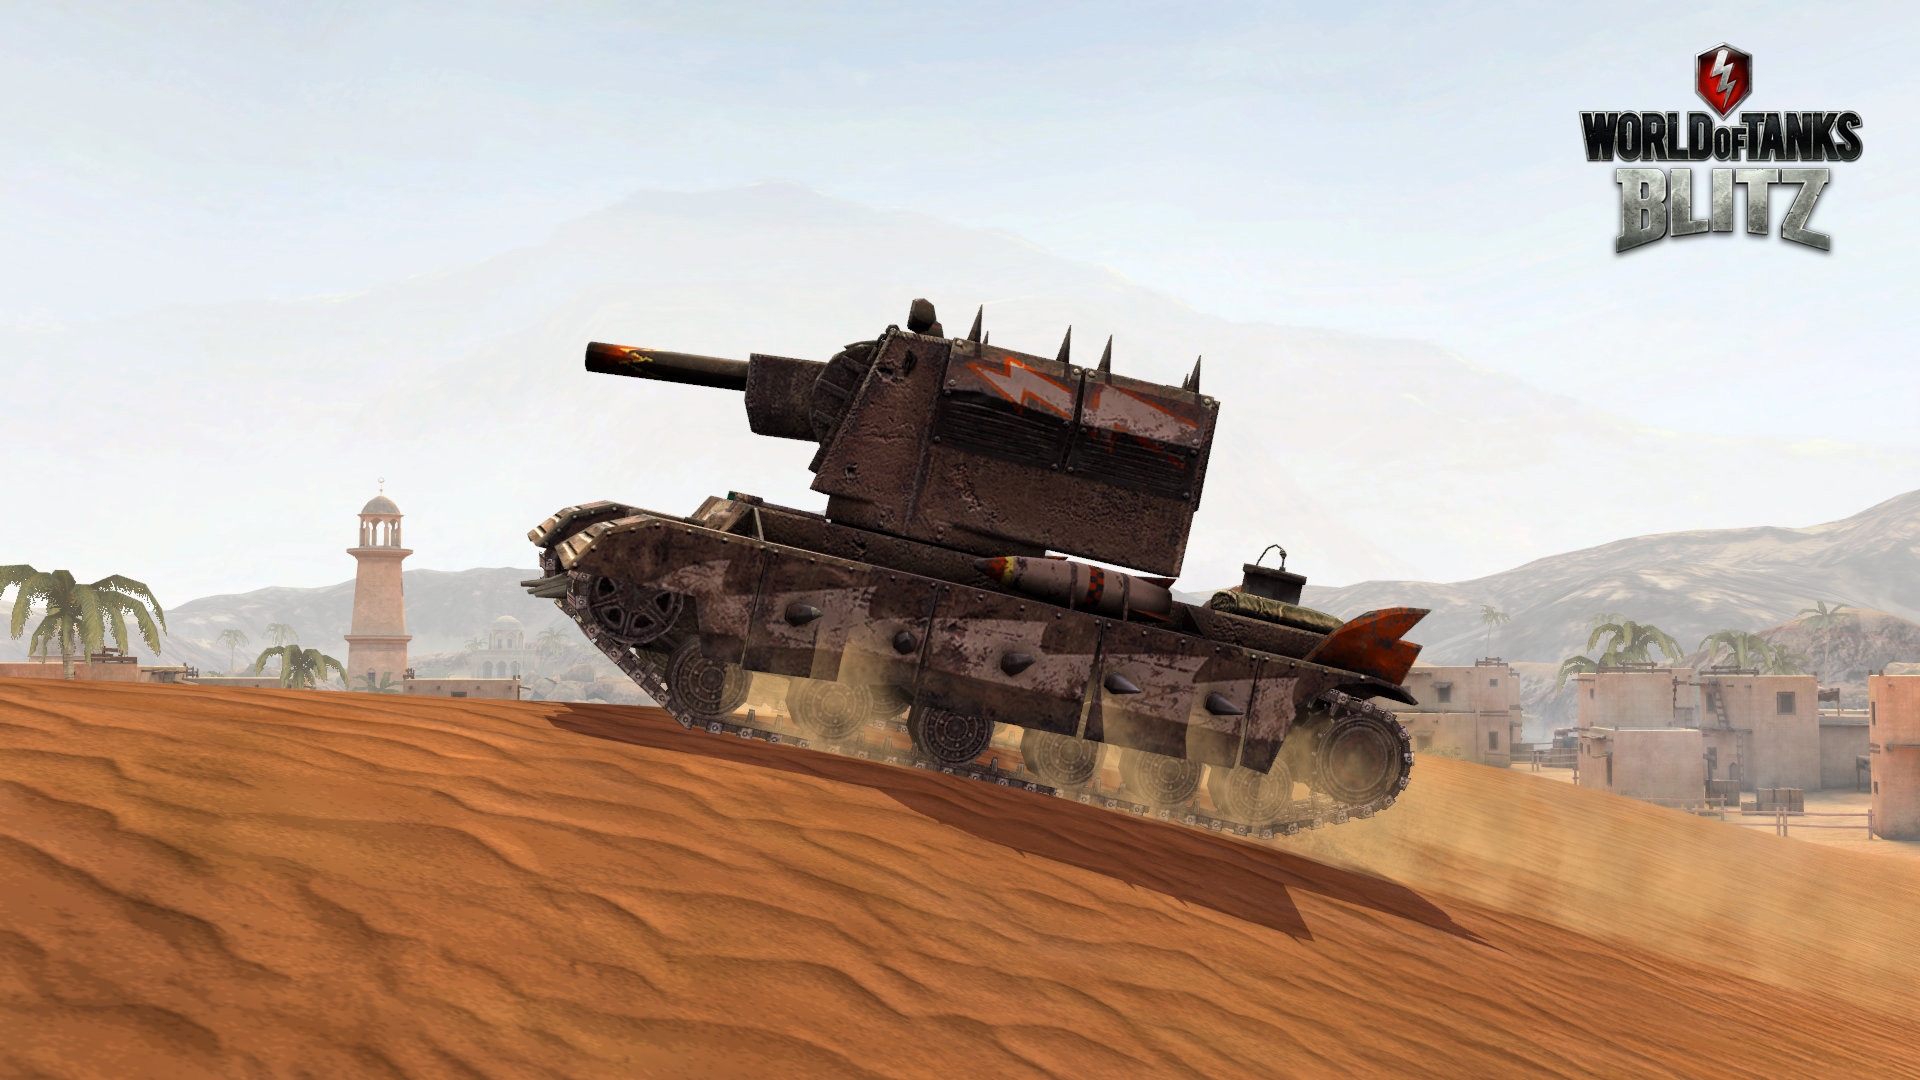 The World of Tanks Blitz and Tank Girl Universes Collide | Invision